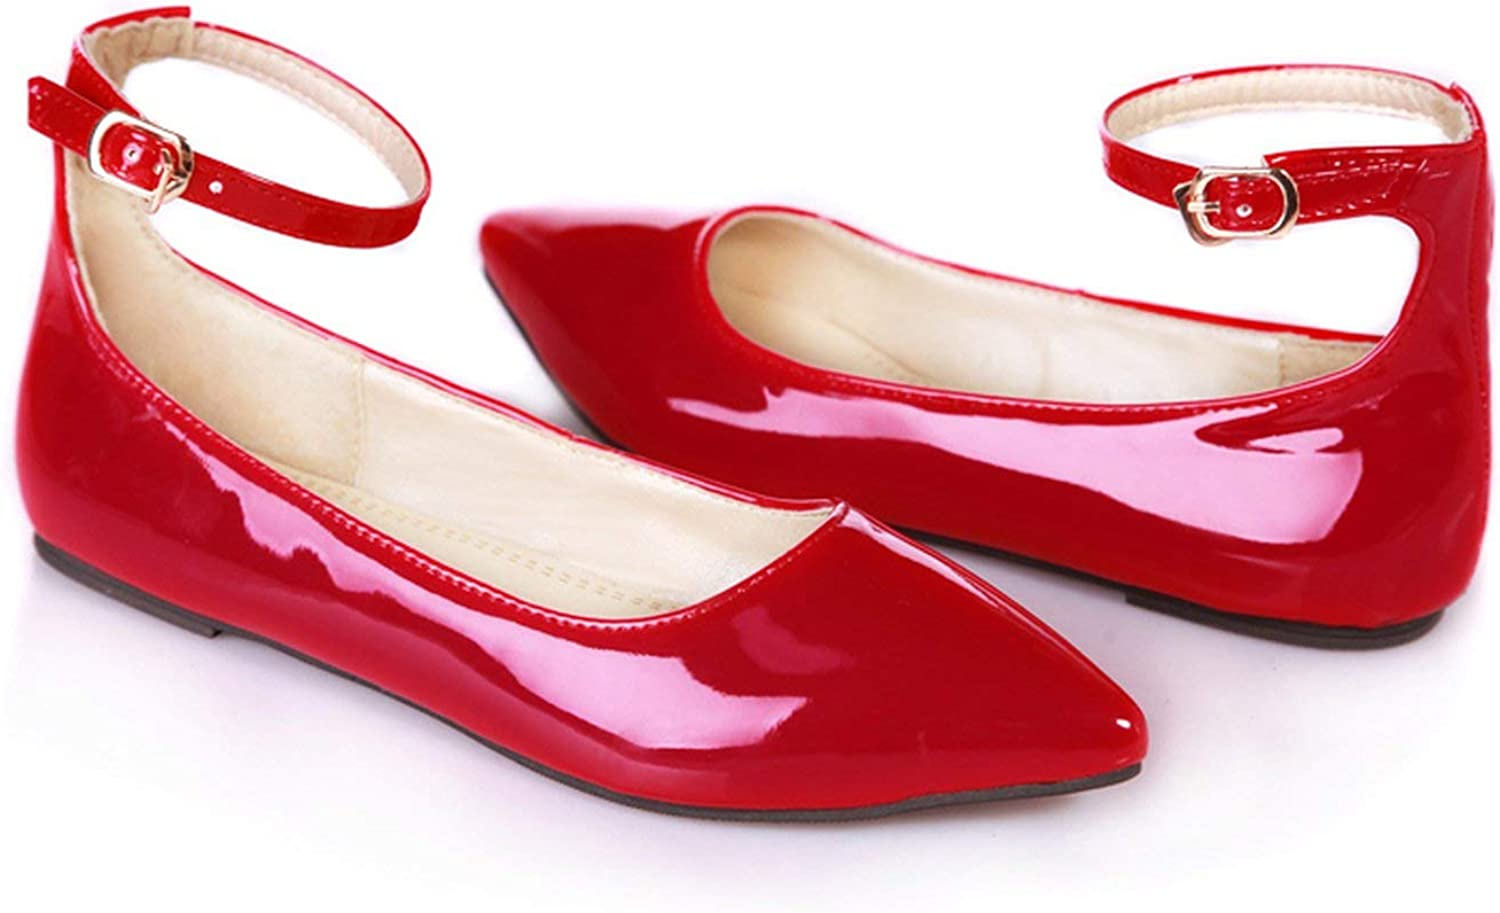 Spring Autumn Flat Shoes Woman Pointed Toe Buckle Casual Patent Leather Women Flats red